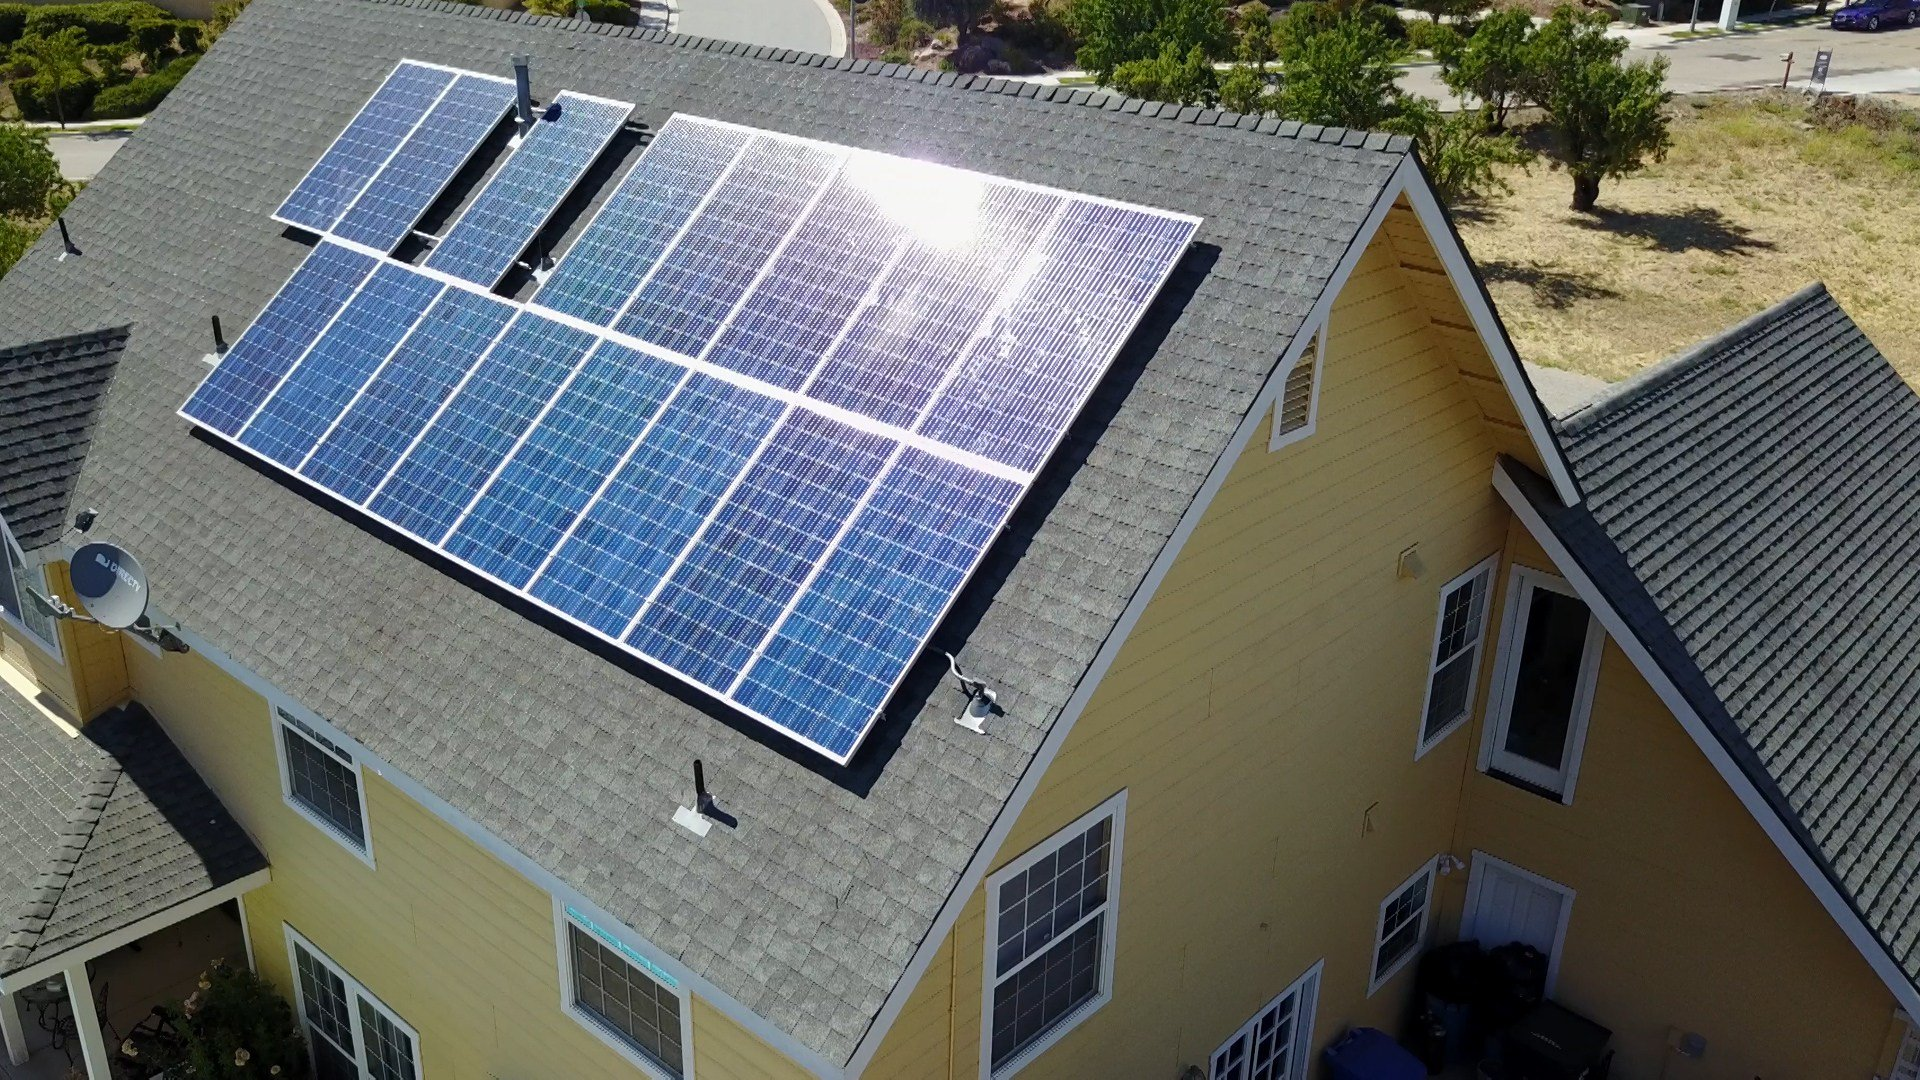 California mandates solar PV on all new residential buildings